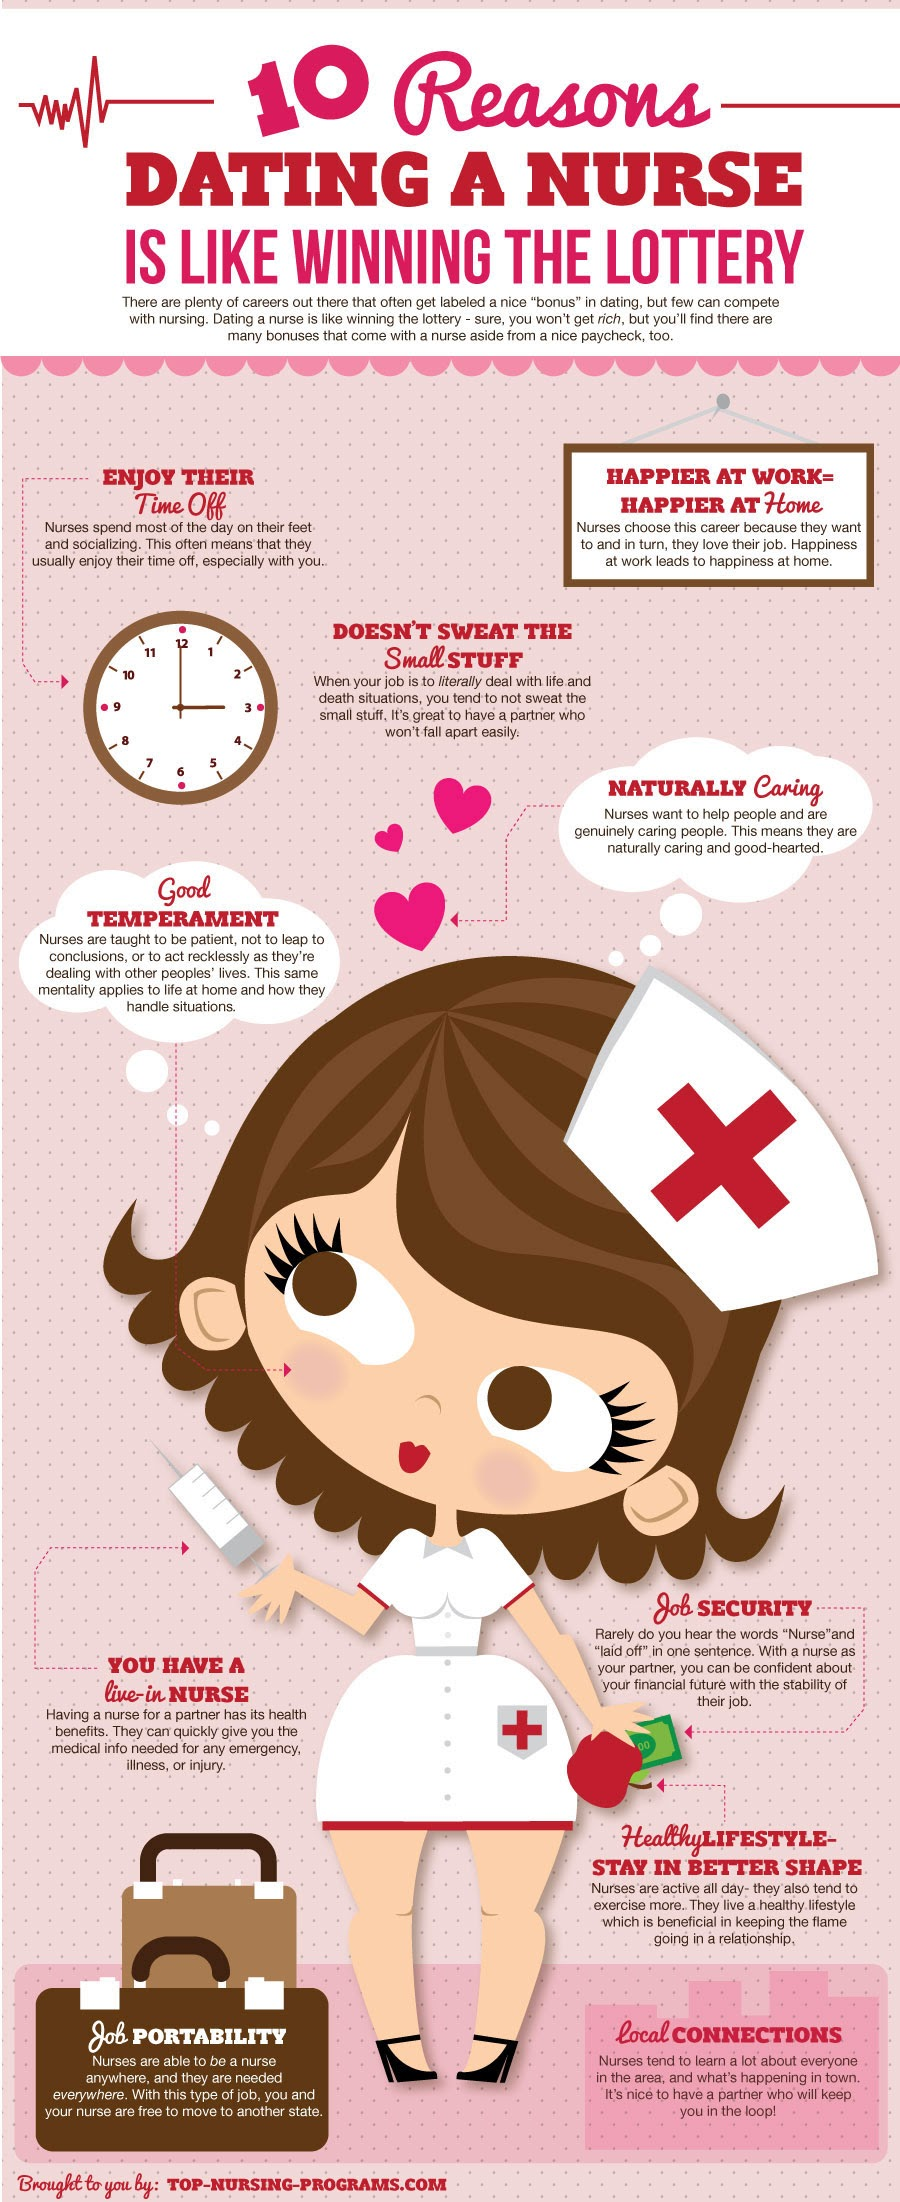 10-Reasons-Why-Dating-A-Nurse-Is-Like-Winning-The-Lottery  #Infographic